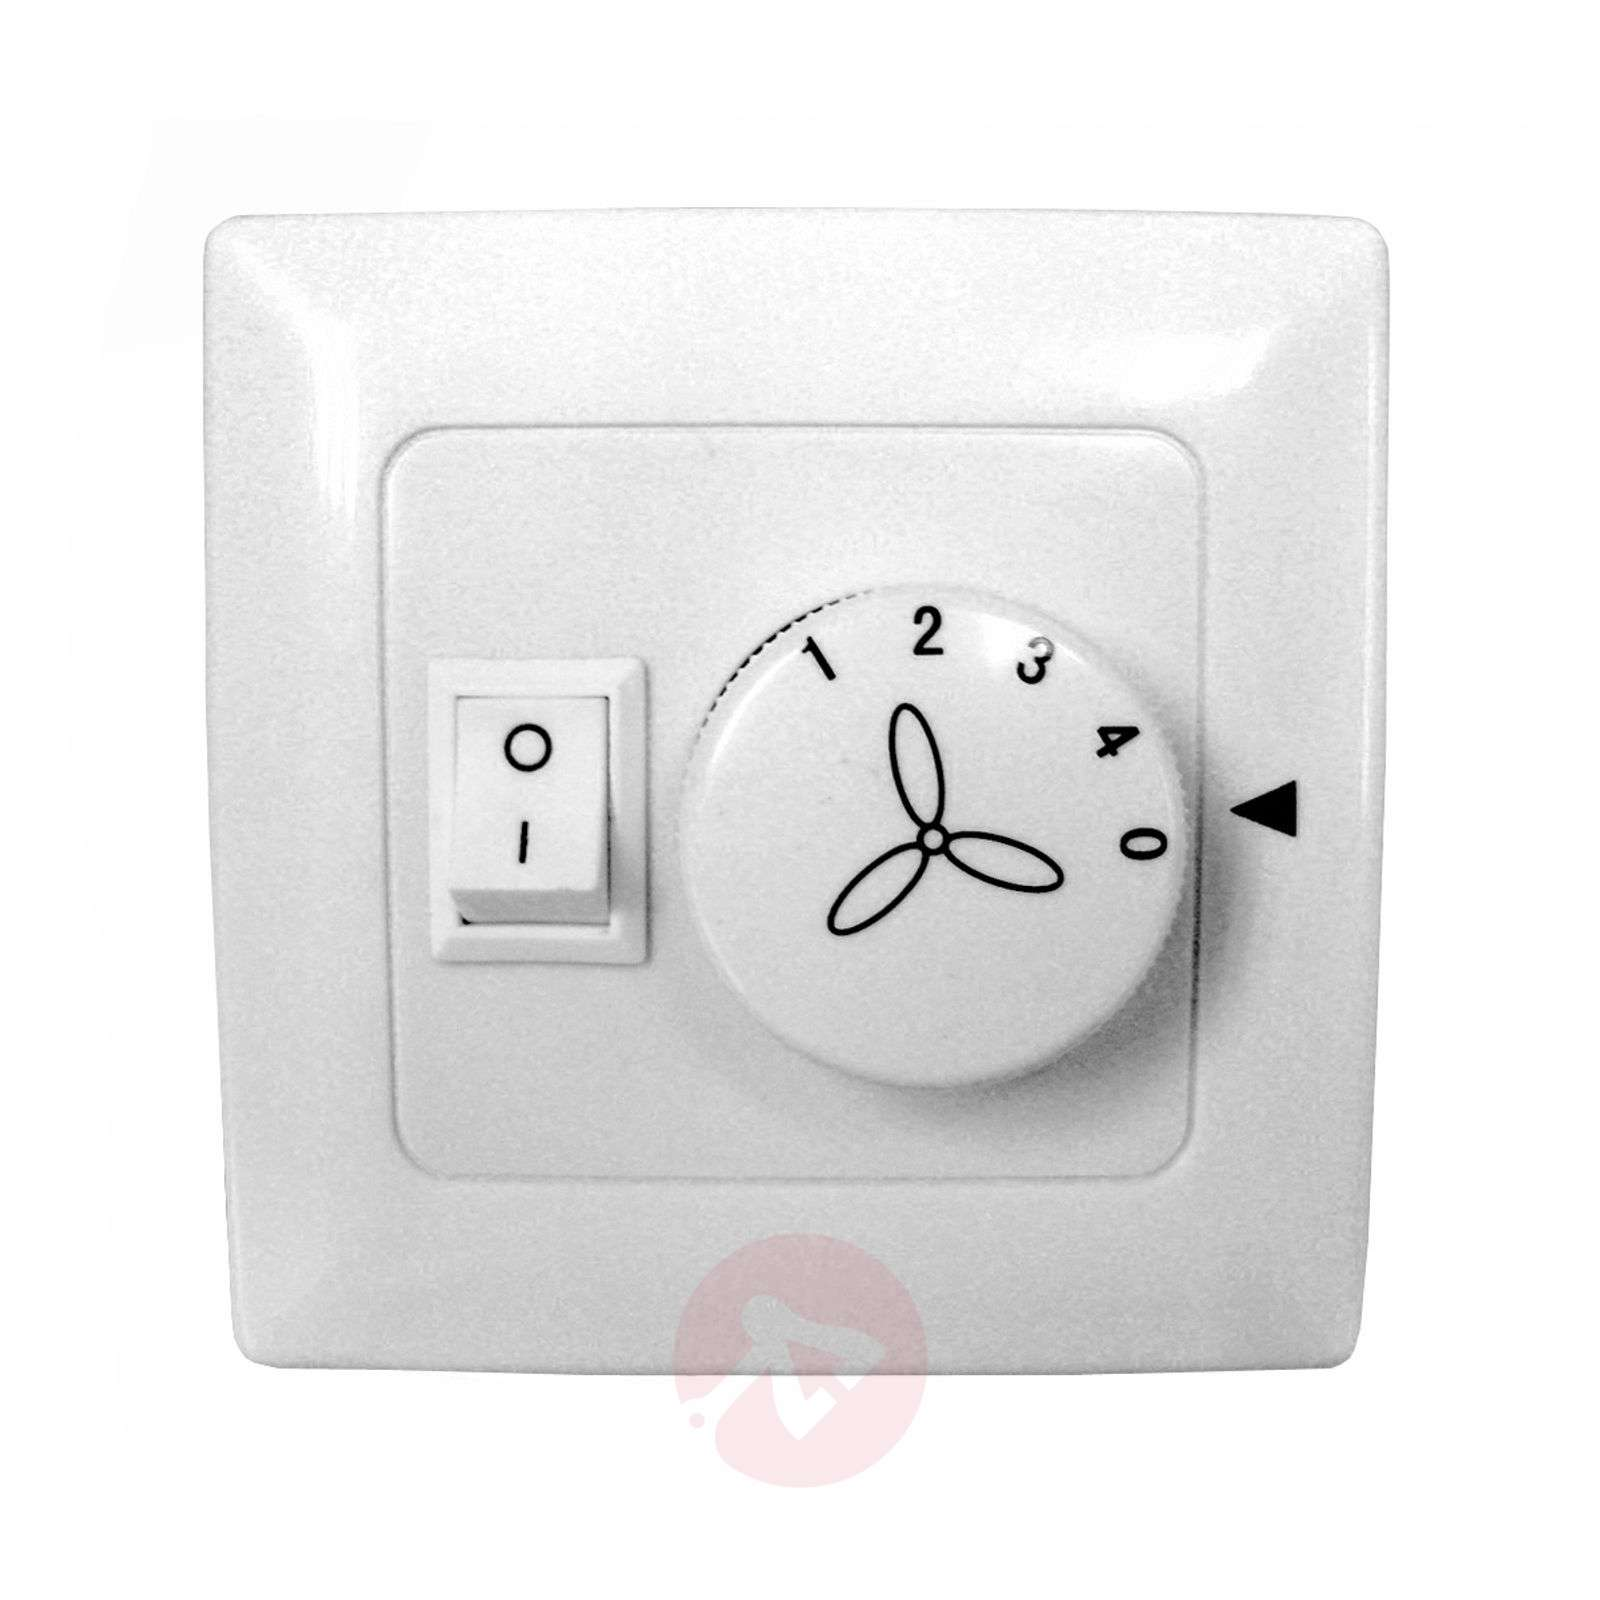 Wall switch for fans with lights, four levels-9602072-09